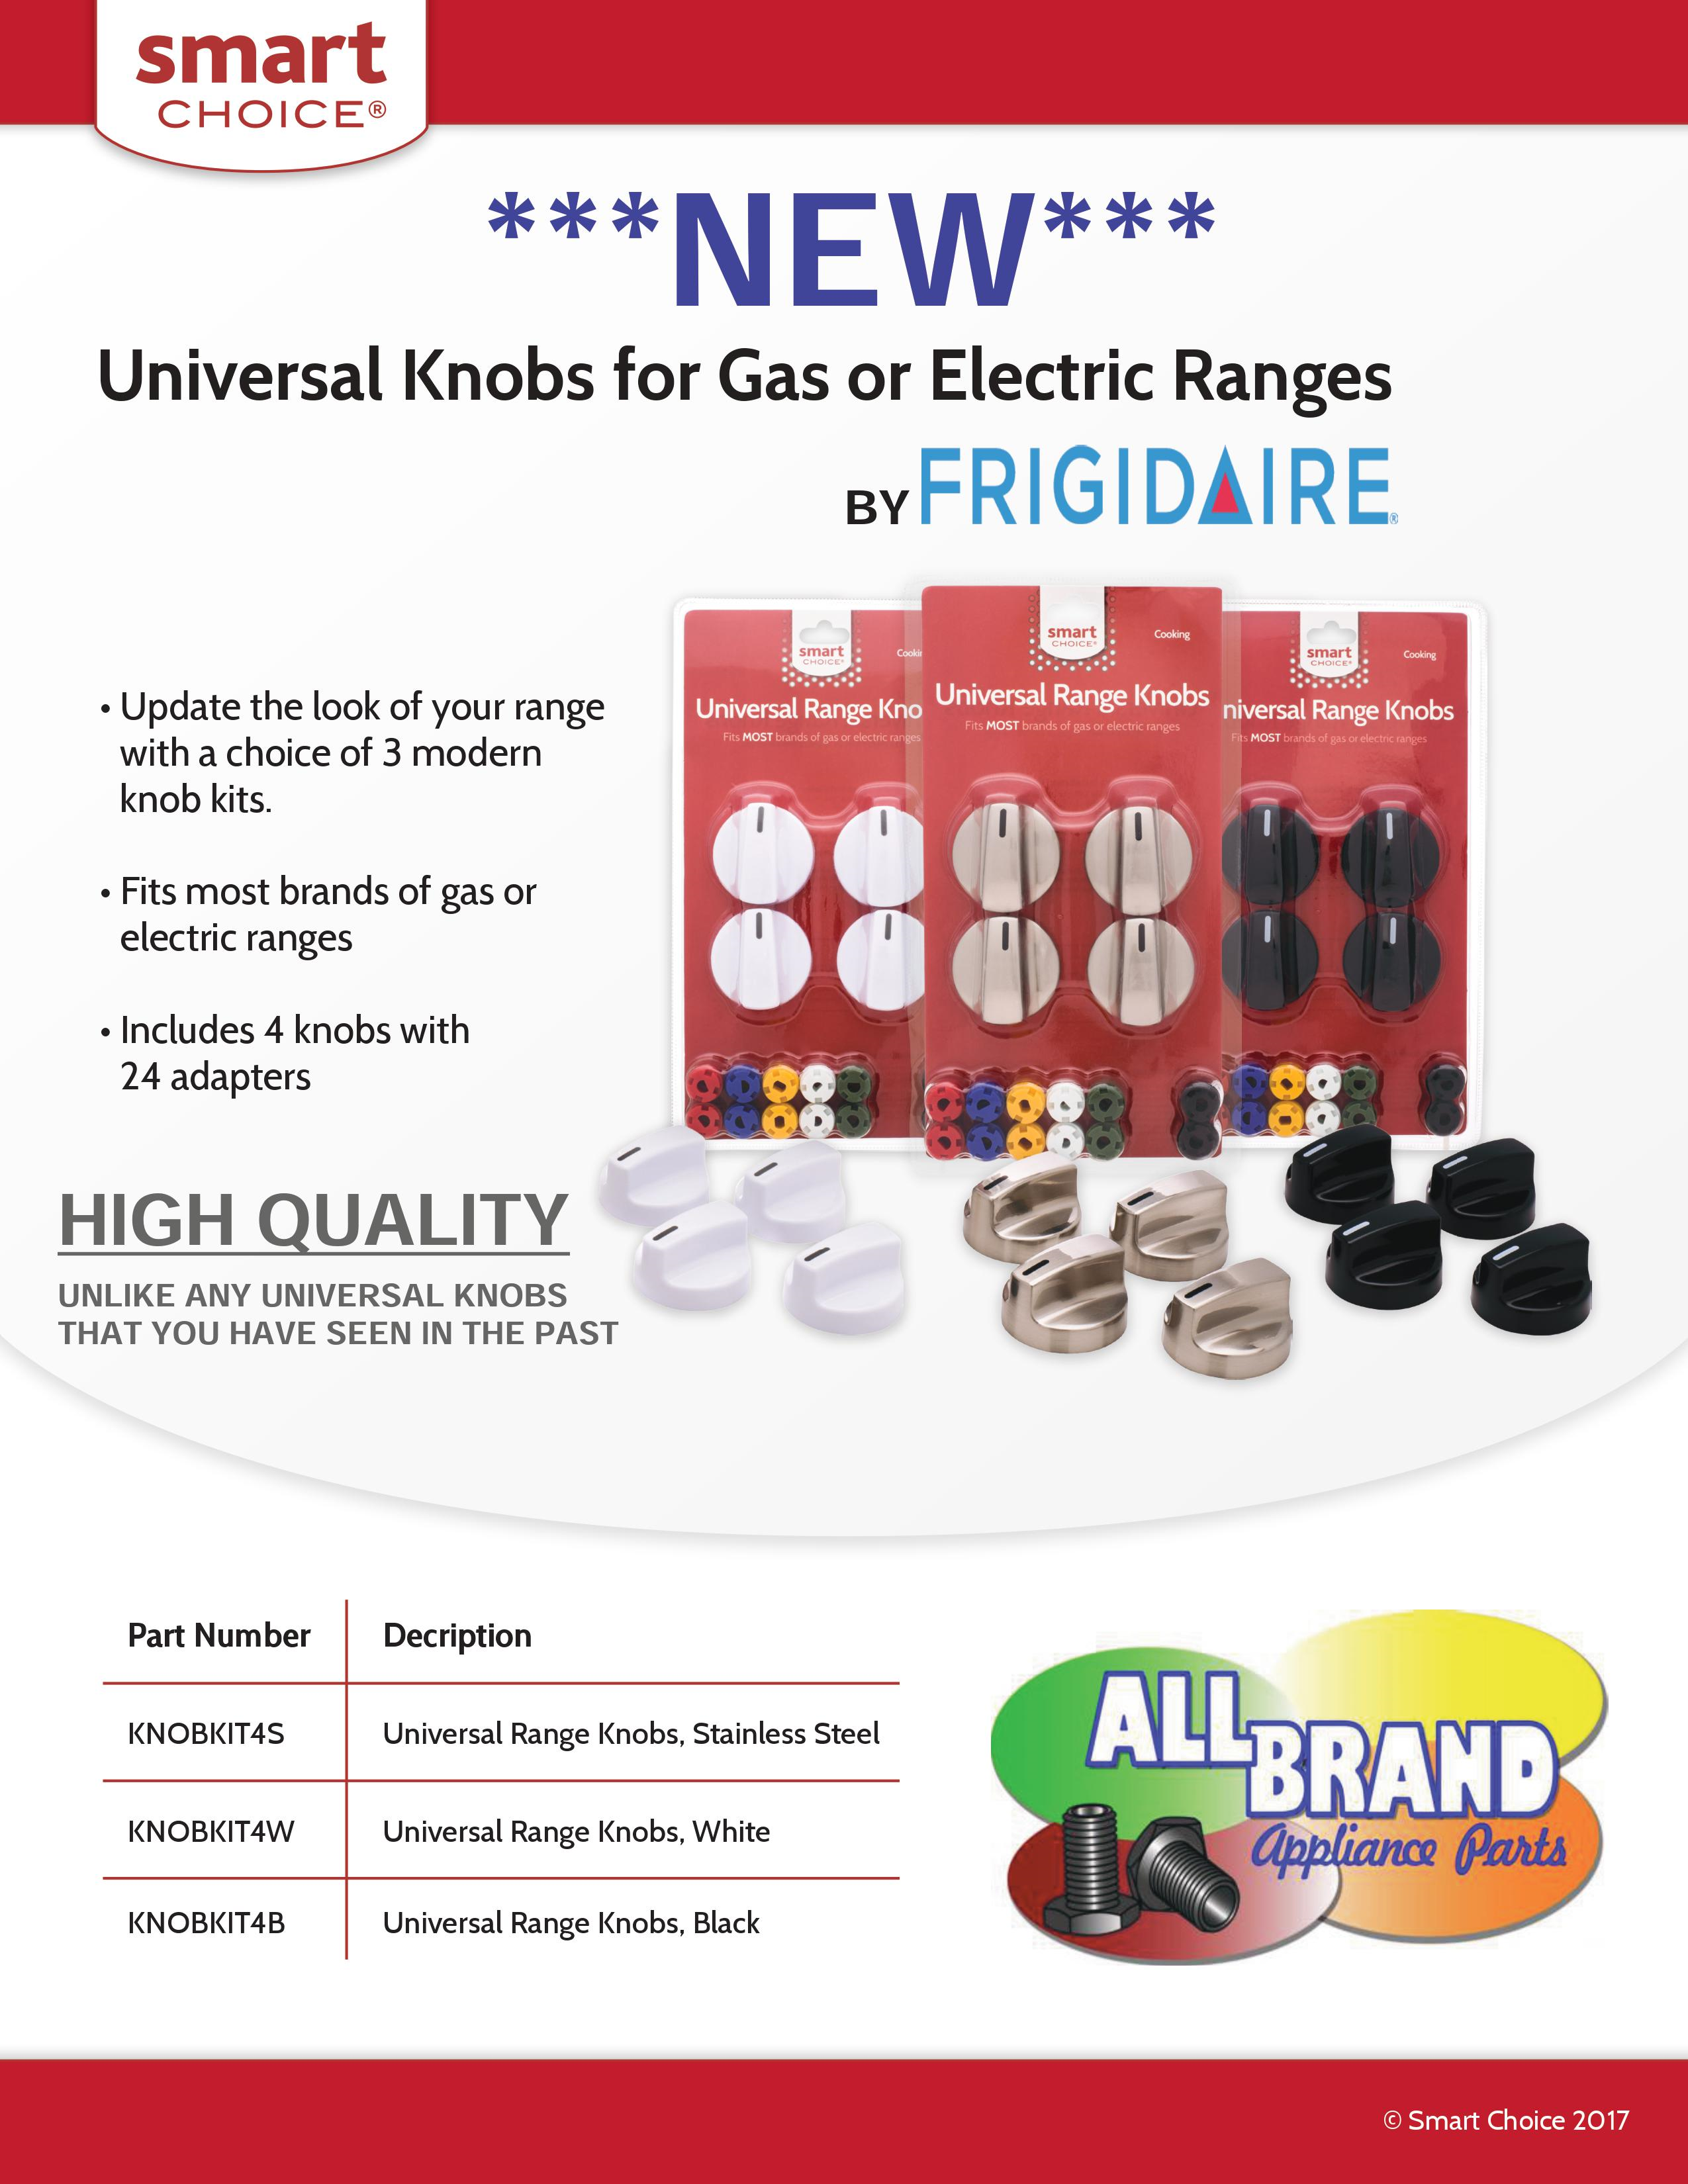 Smart Choice (Frigidaire) Universal Knob Kits